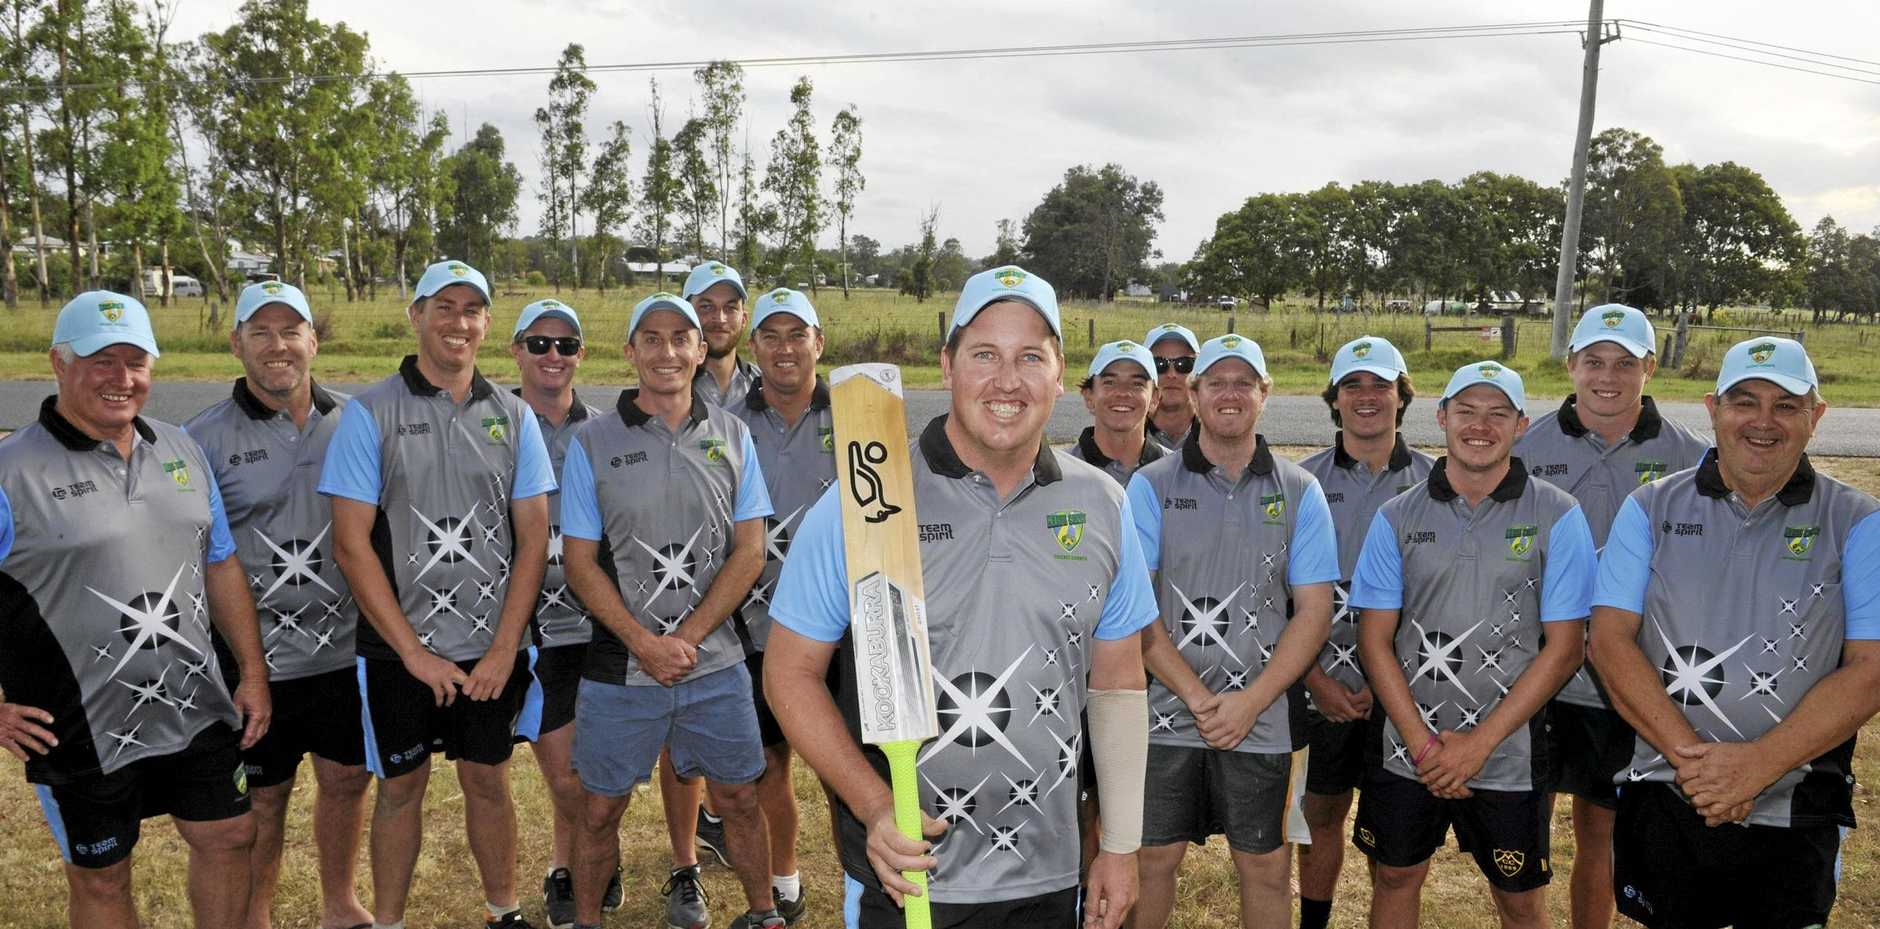 LEADING FROM THE FRONT: Richie Gallichan (centre) will lead the Coffs Coast Chargers into the finals of the Plan B Regional Bash at the Sydney Cricket Ground on February 5.